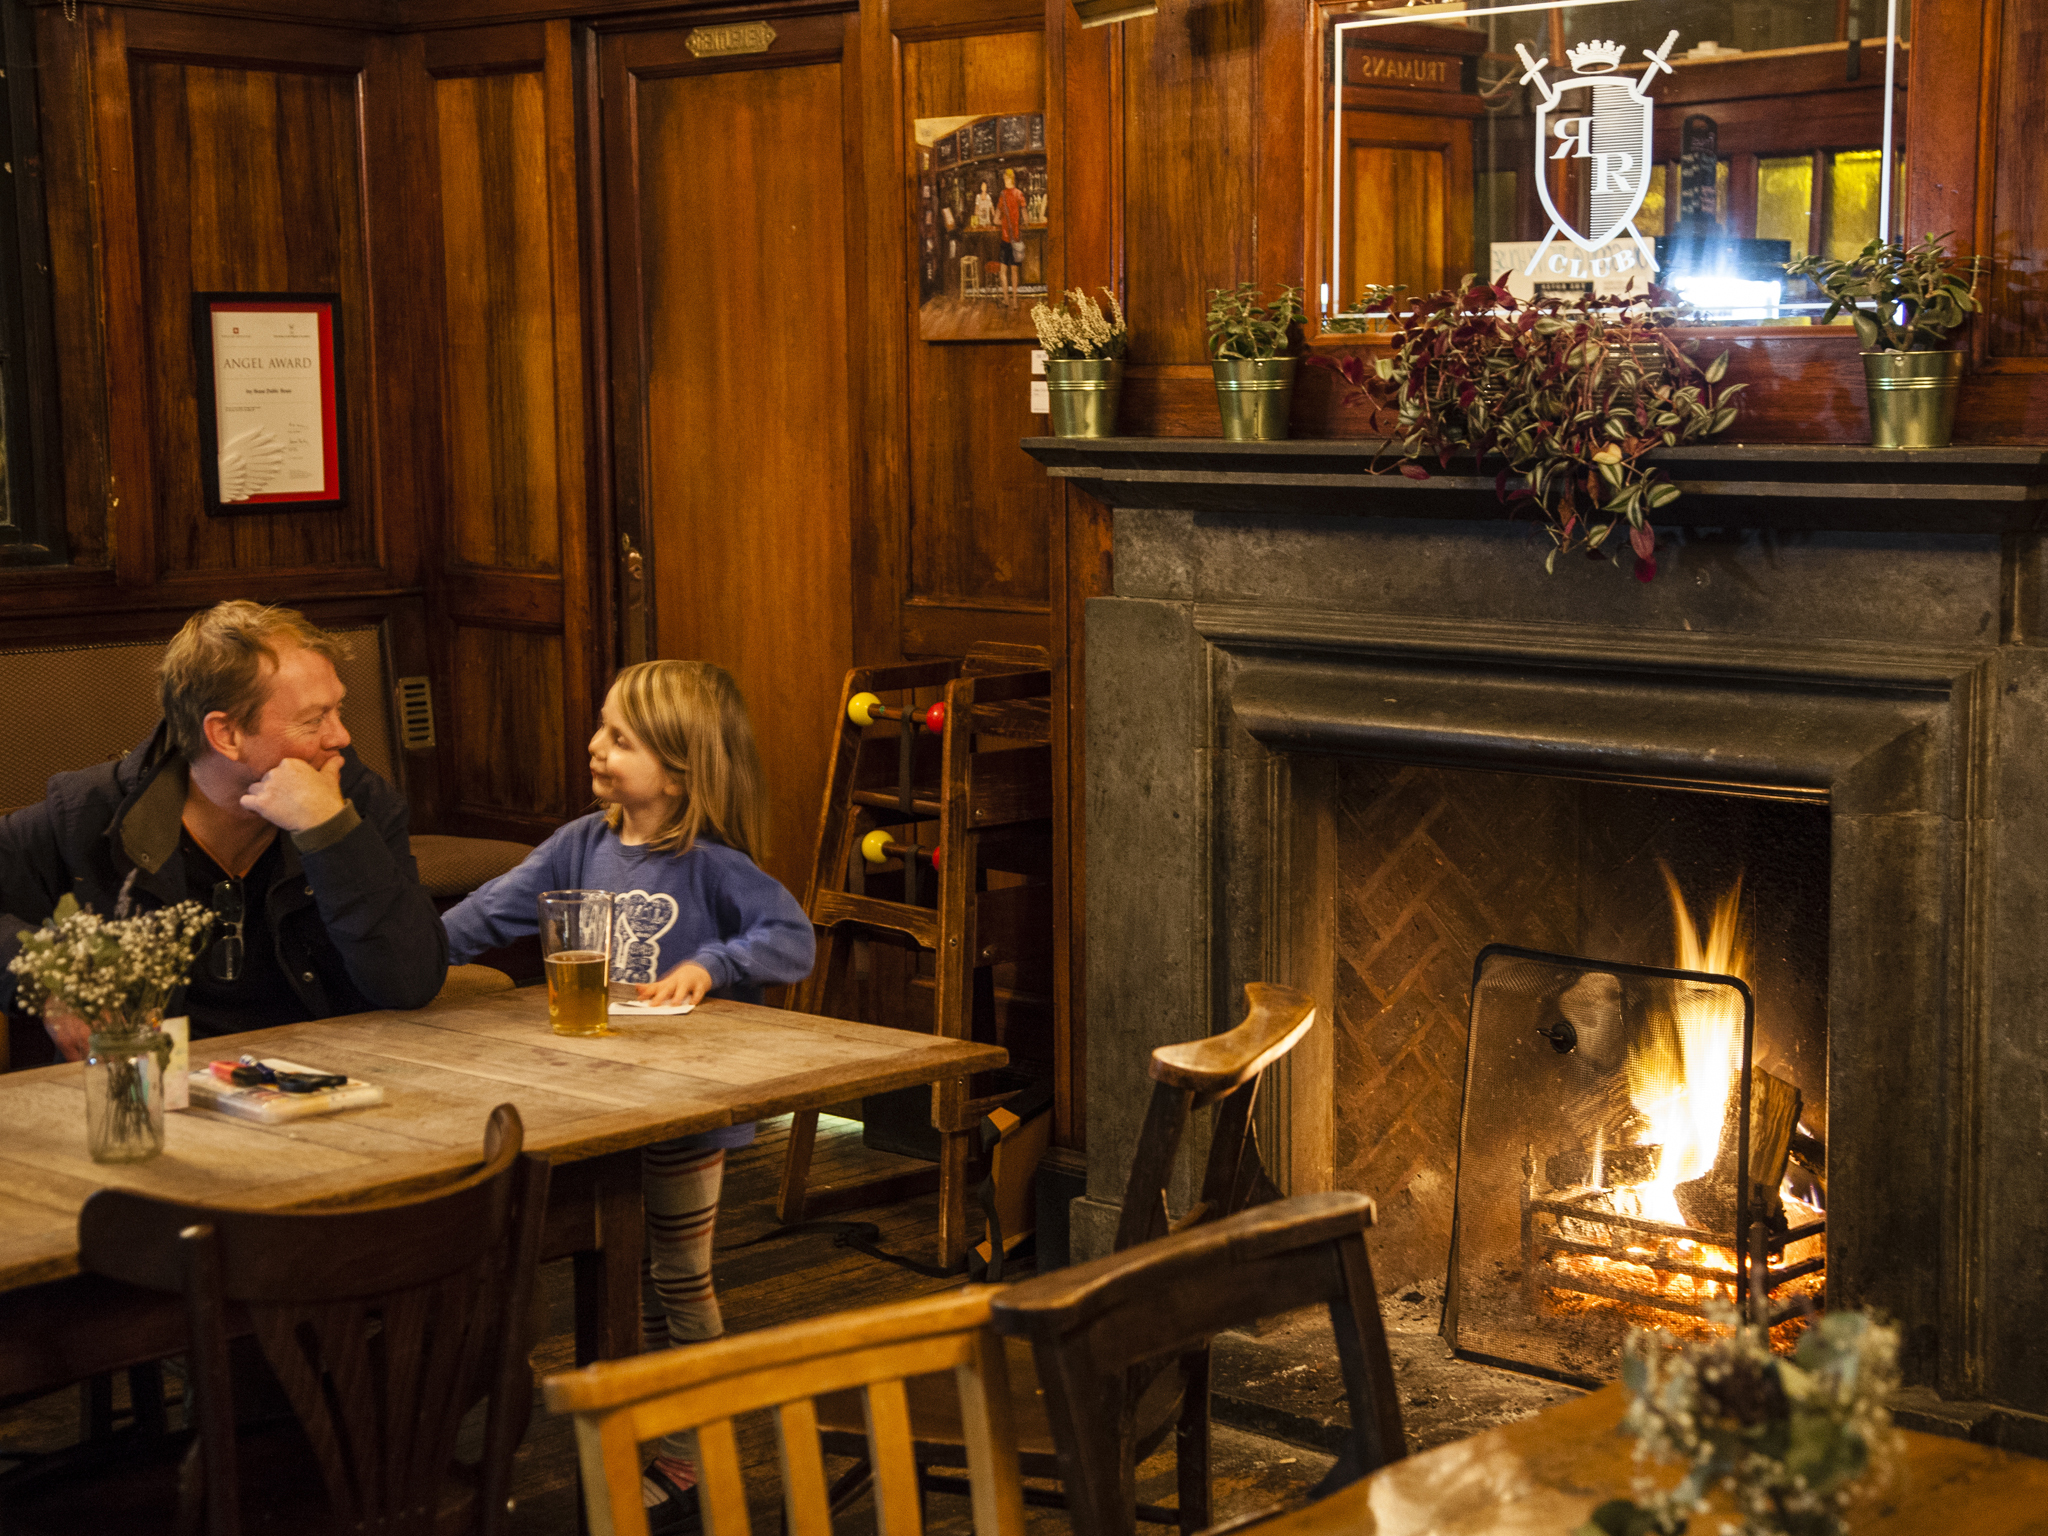 ivy house, pubs with fires